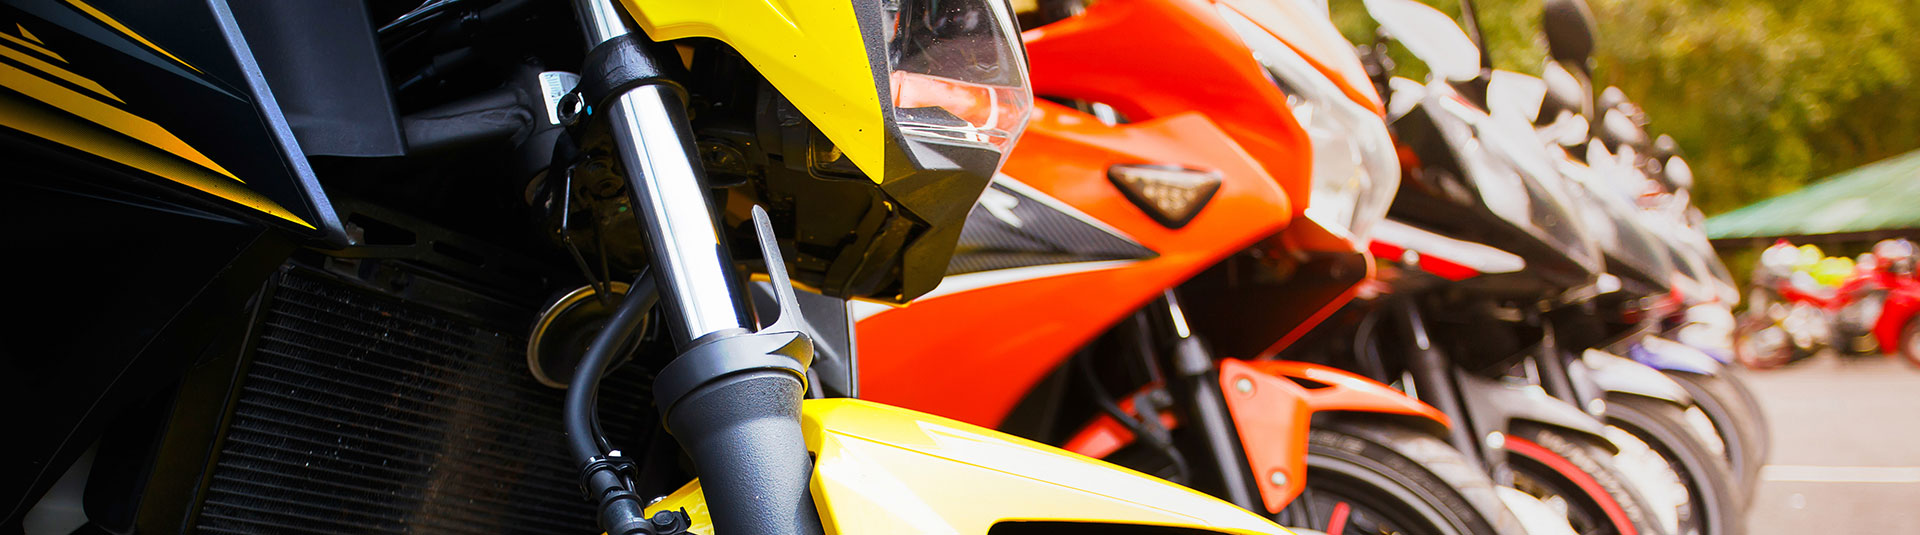 "Lawfully ""Terminated"" Motorcycle Dealer Retains Right to Recover Damages"